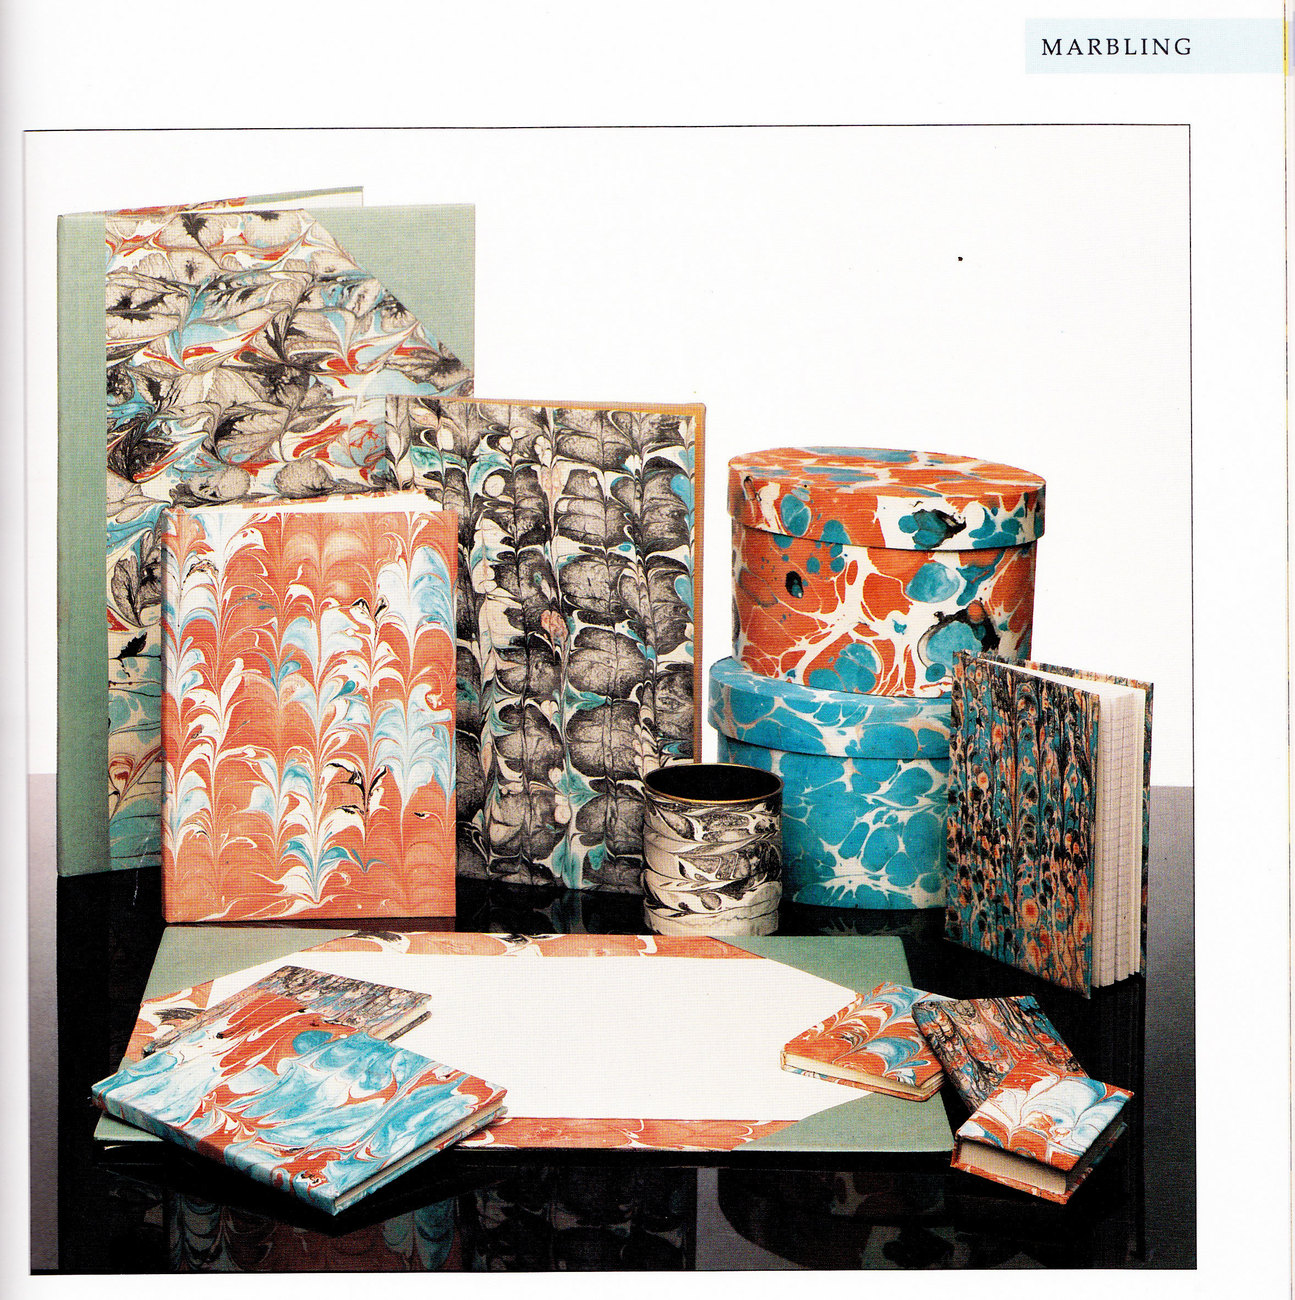 EVERYTHING YOU EVER WANTED TO KNOW ABOUT FABRIC PAINTING J. KENNEDY & VARRALL